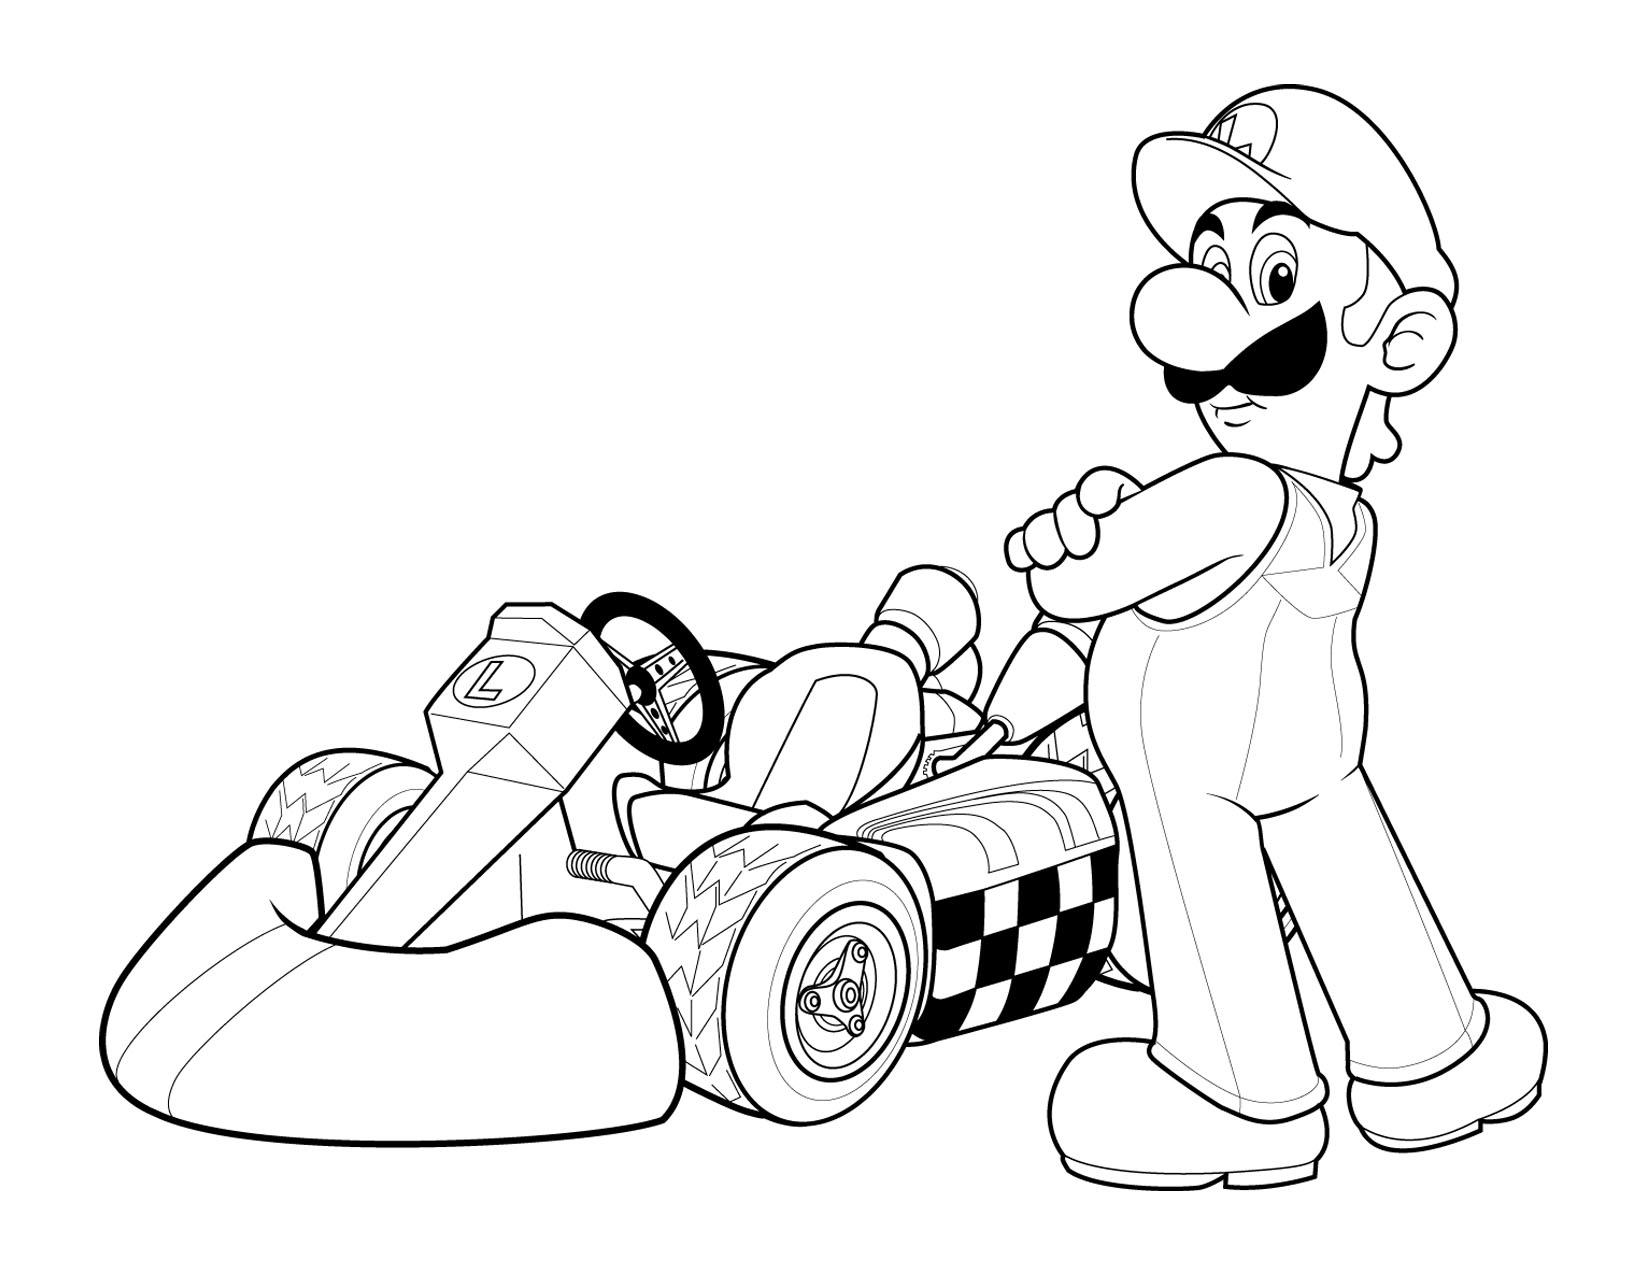 super mario pictures mario coloring pages free download on clipartmag mario super pictures